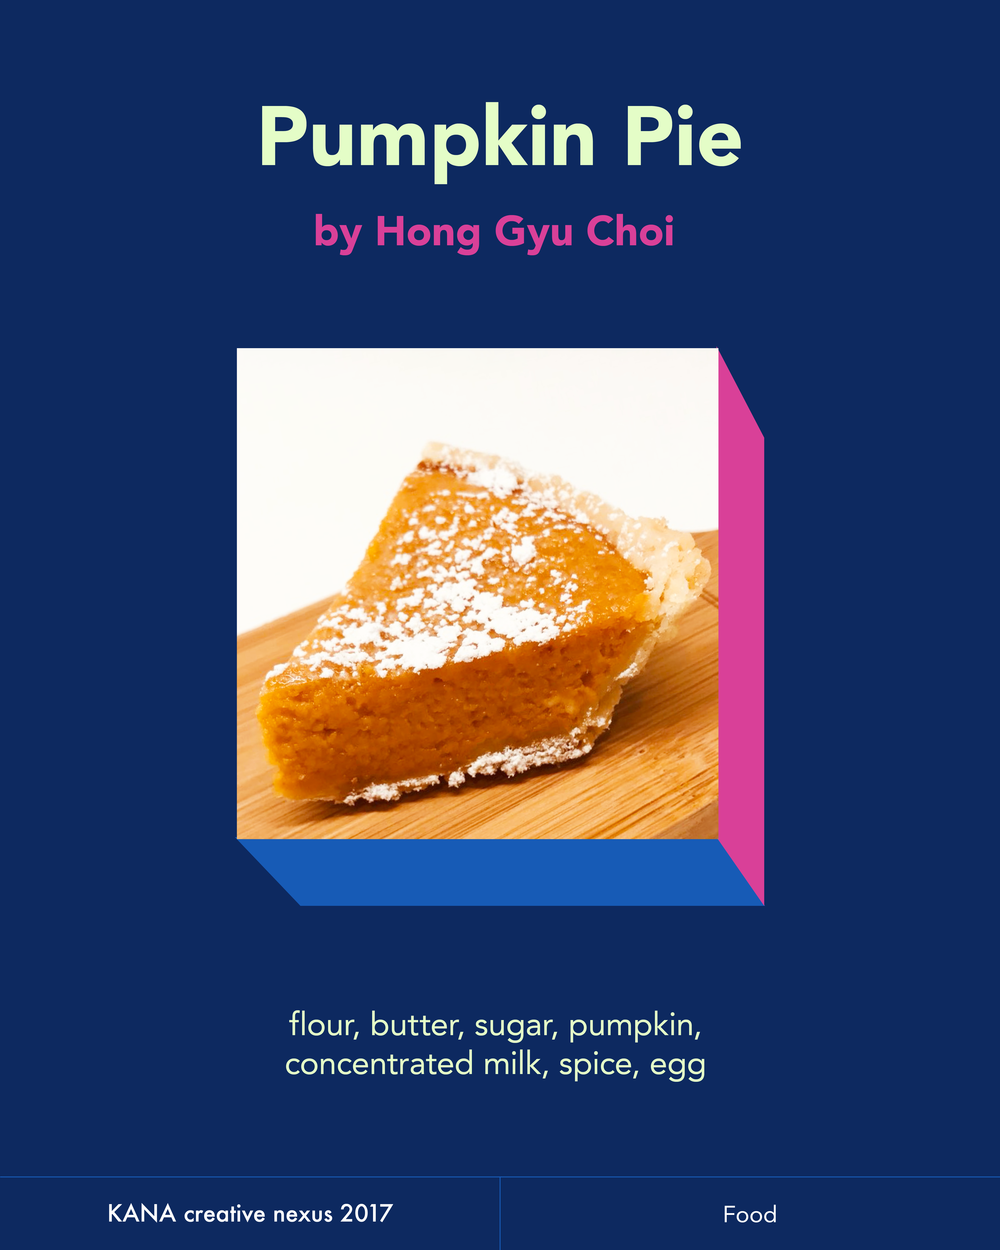 KANA_Social_Food_Pumpkin Pie.png